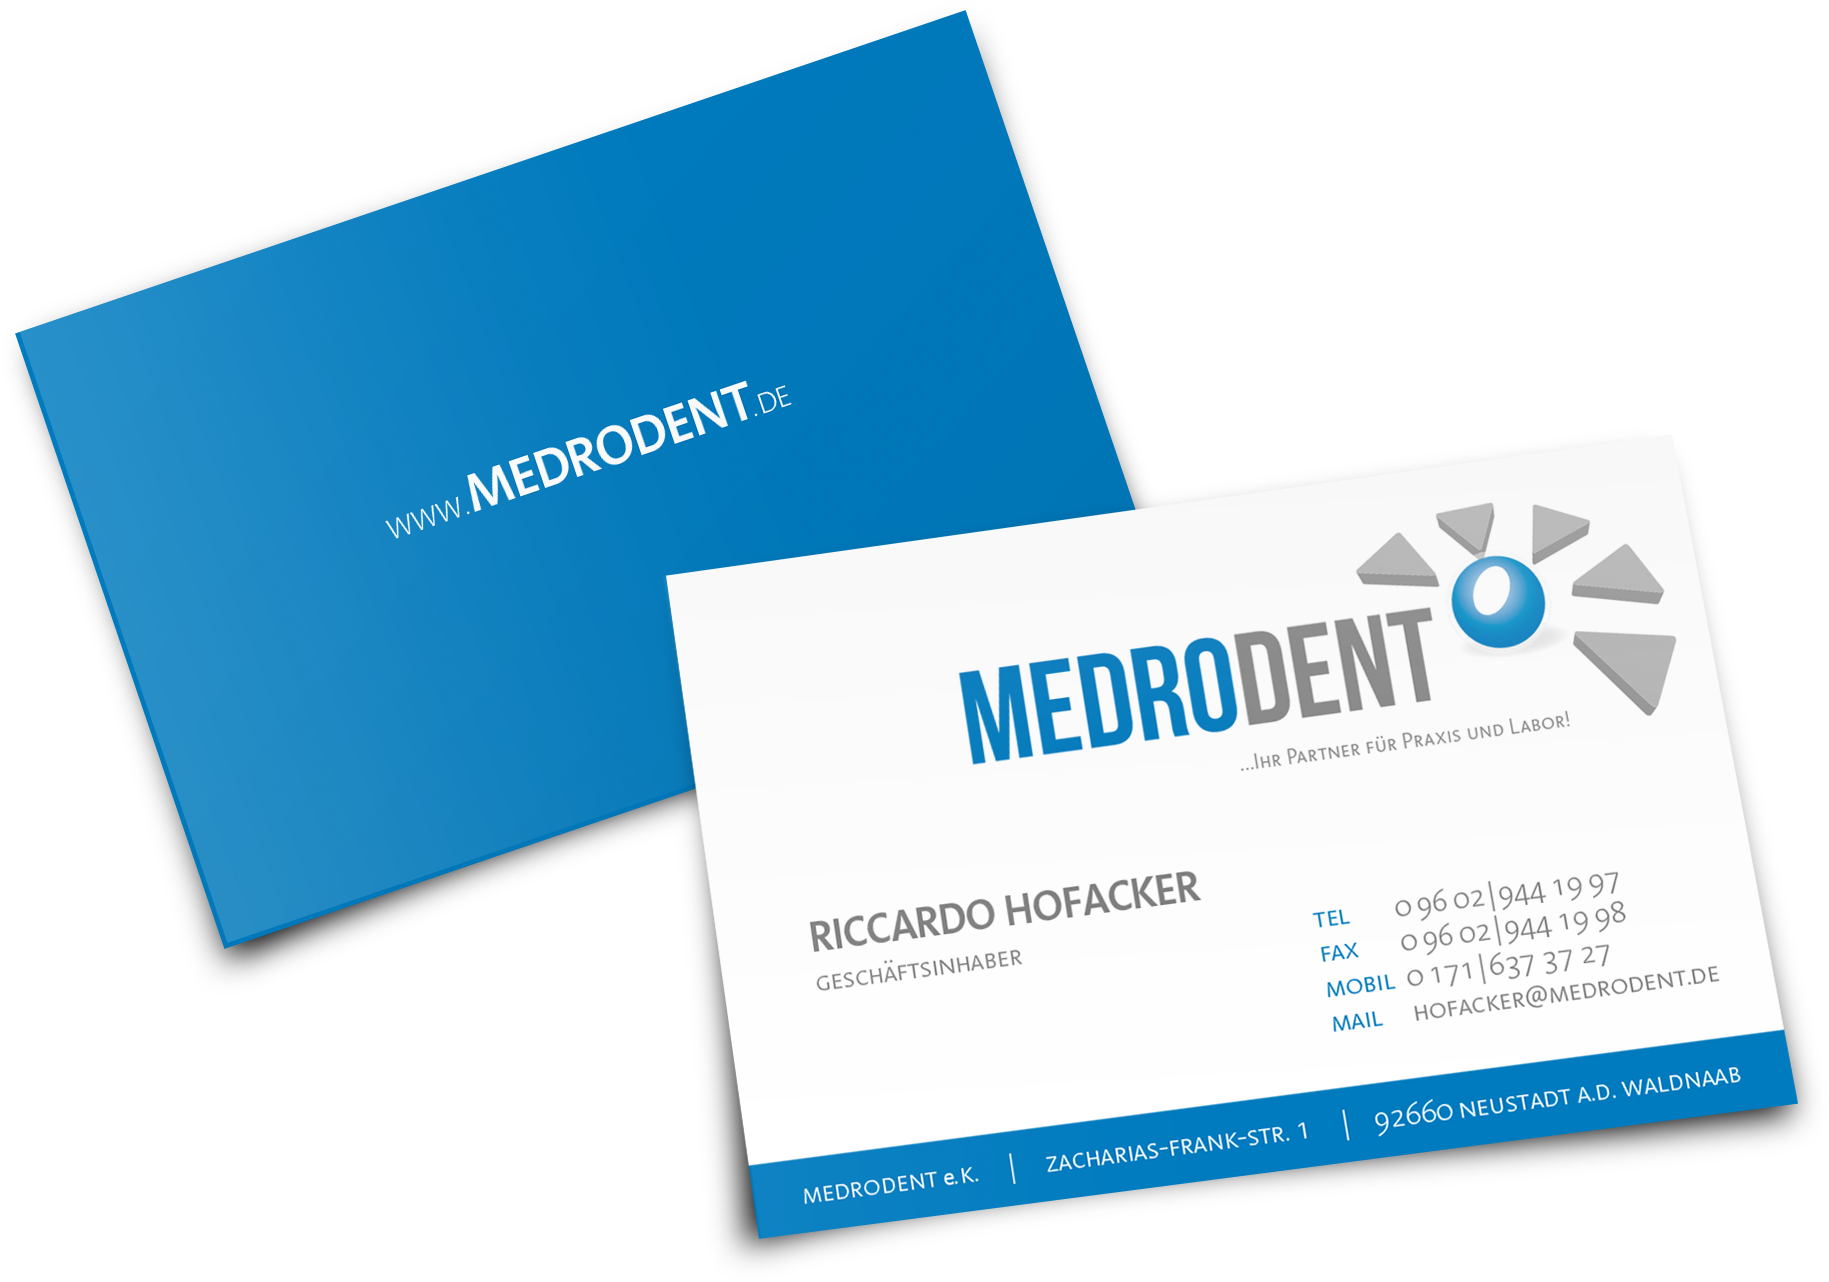 Corporate Design - Medrodent